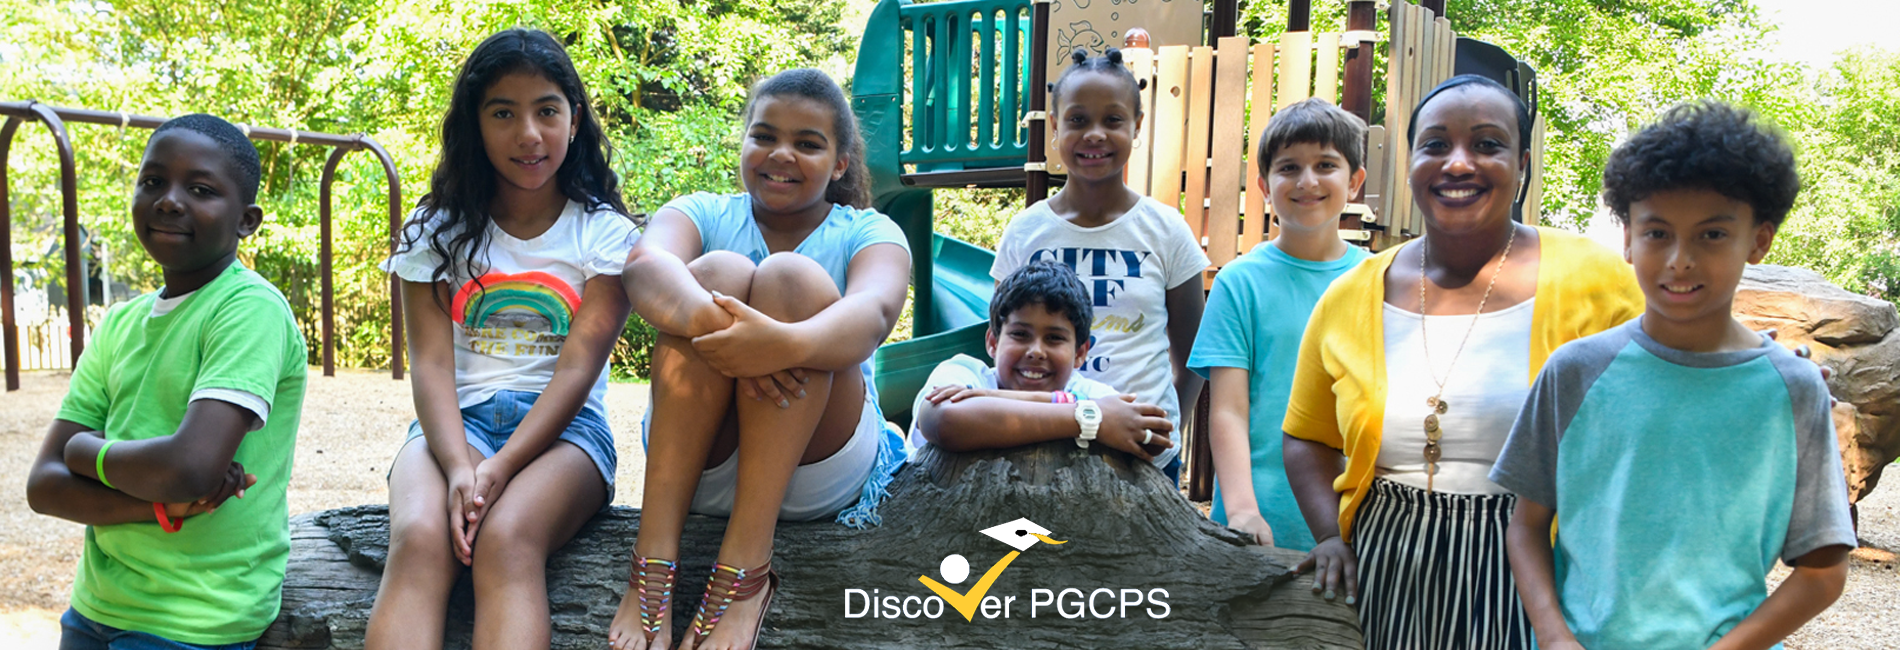 Discover-PGCPS